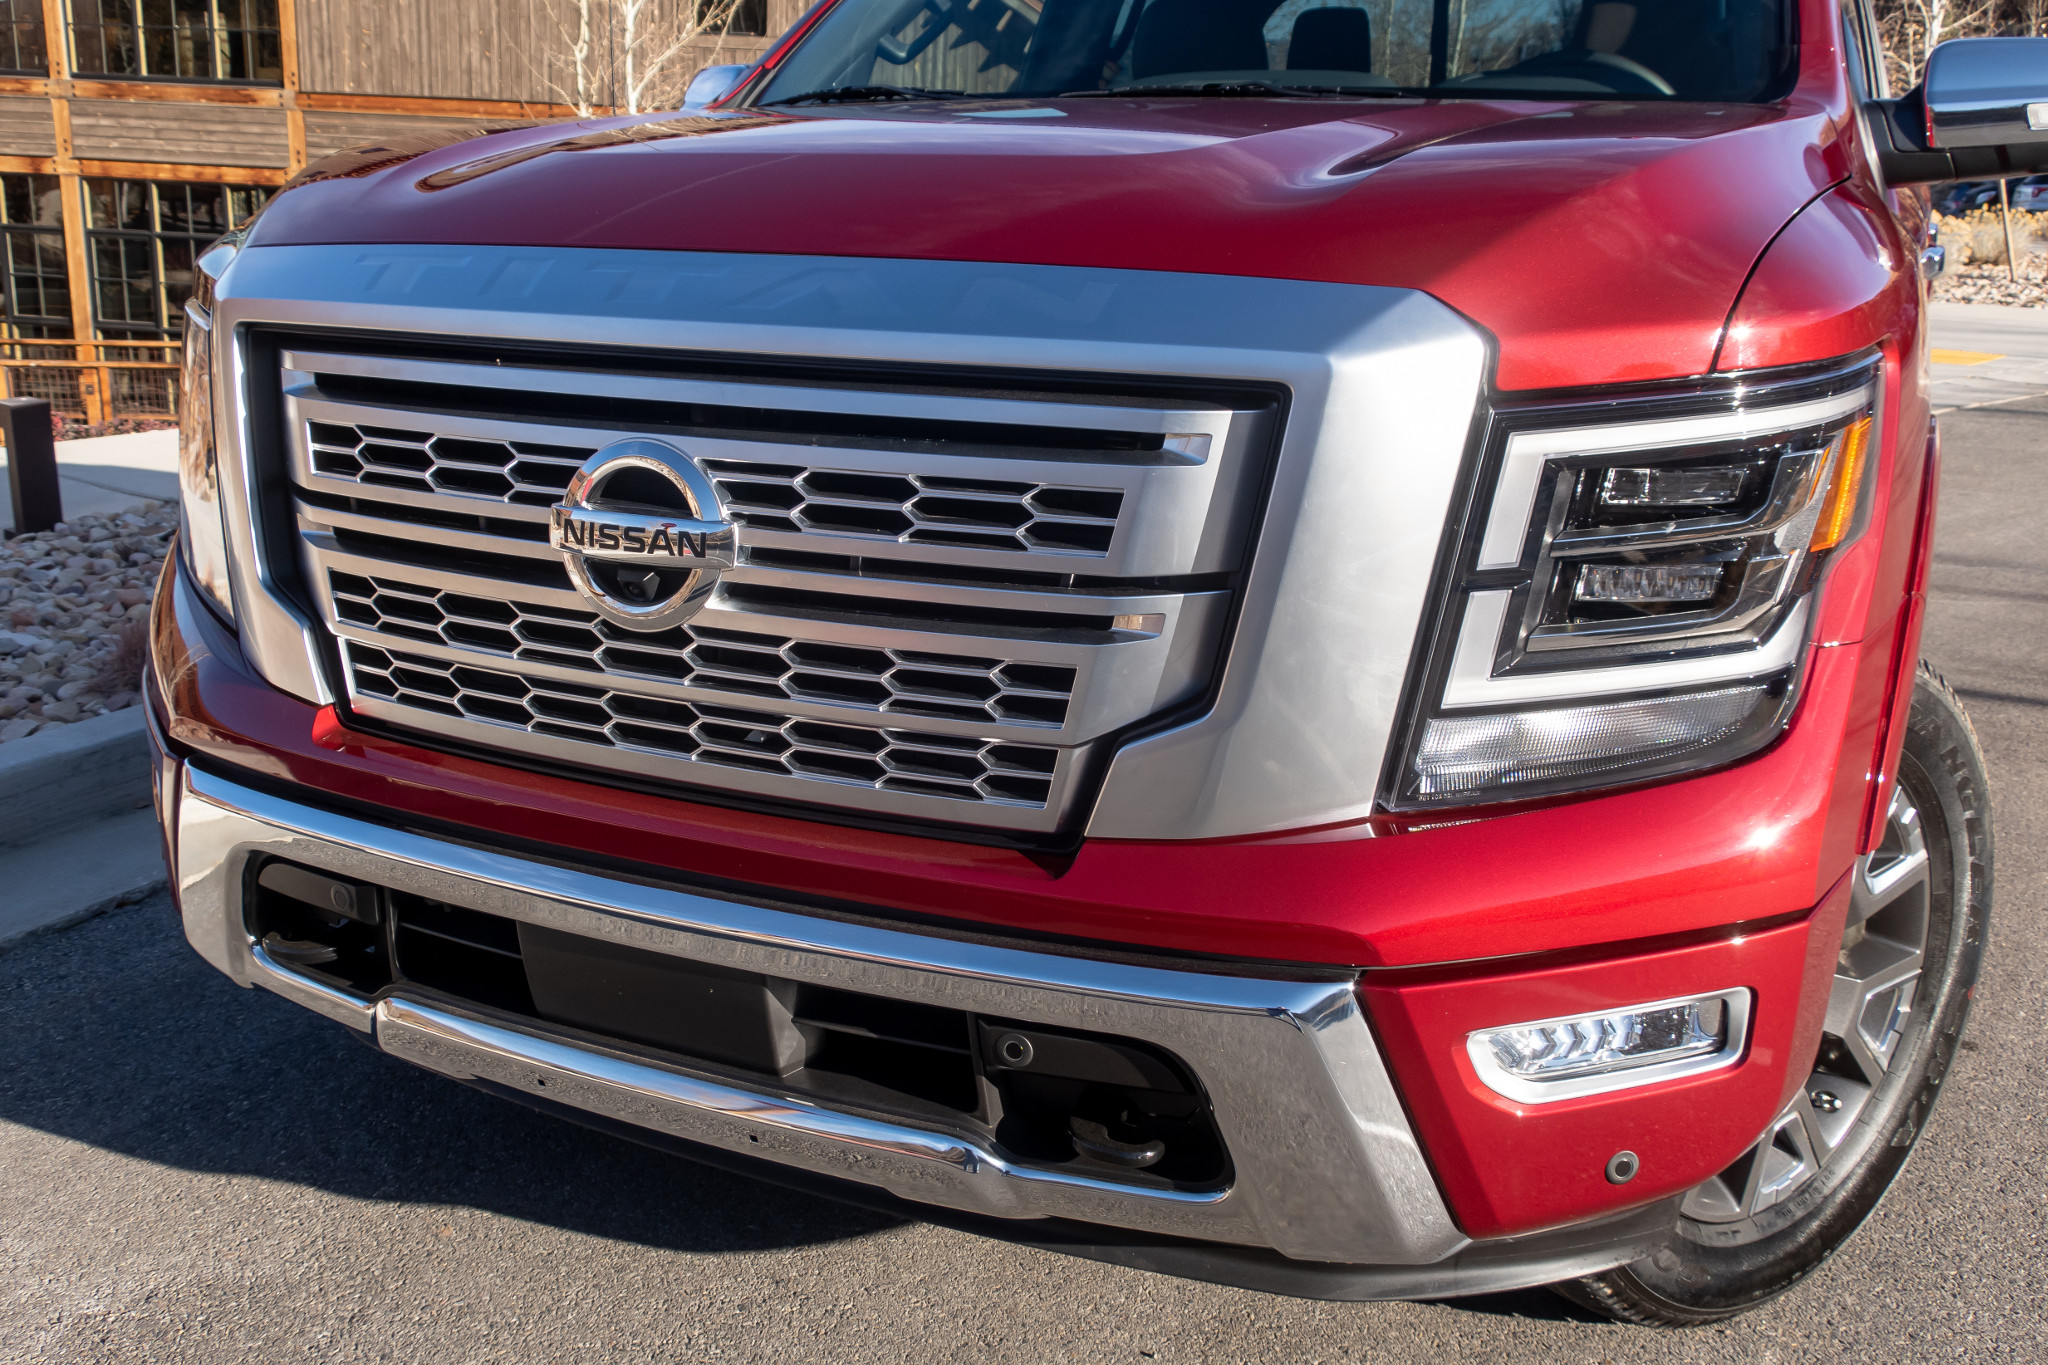 2020 Nissan Titan: Everything You Need to Know